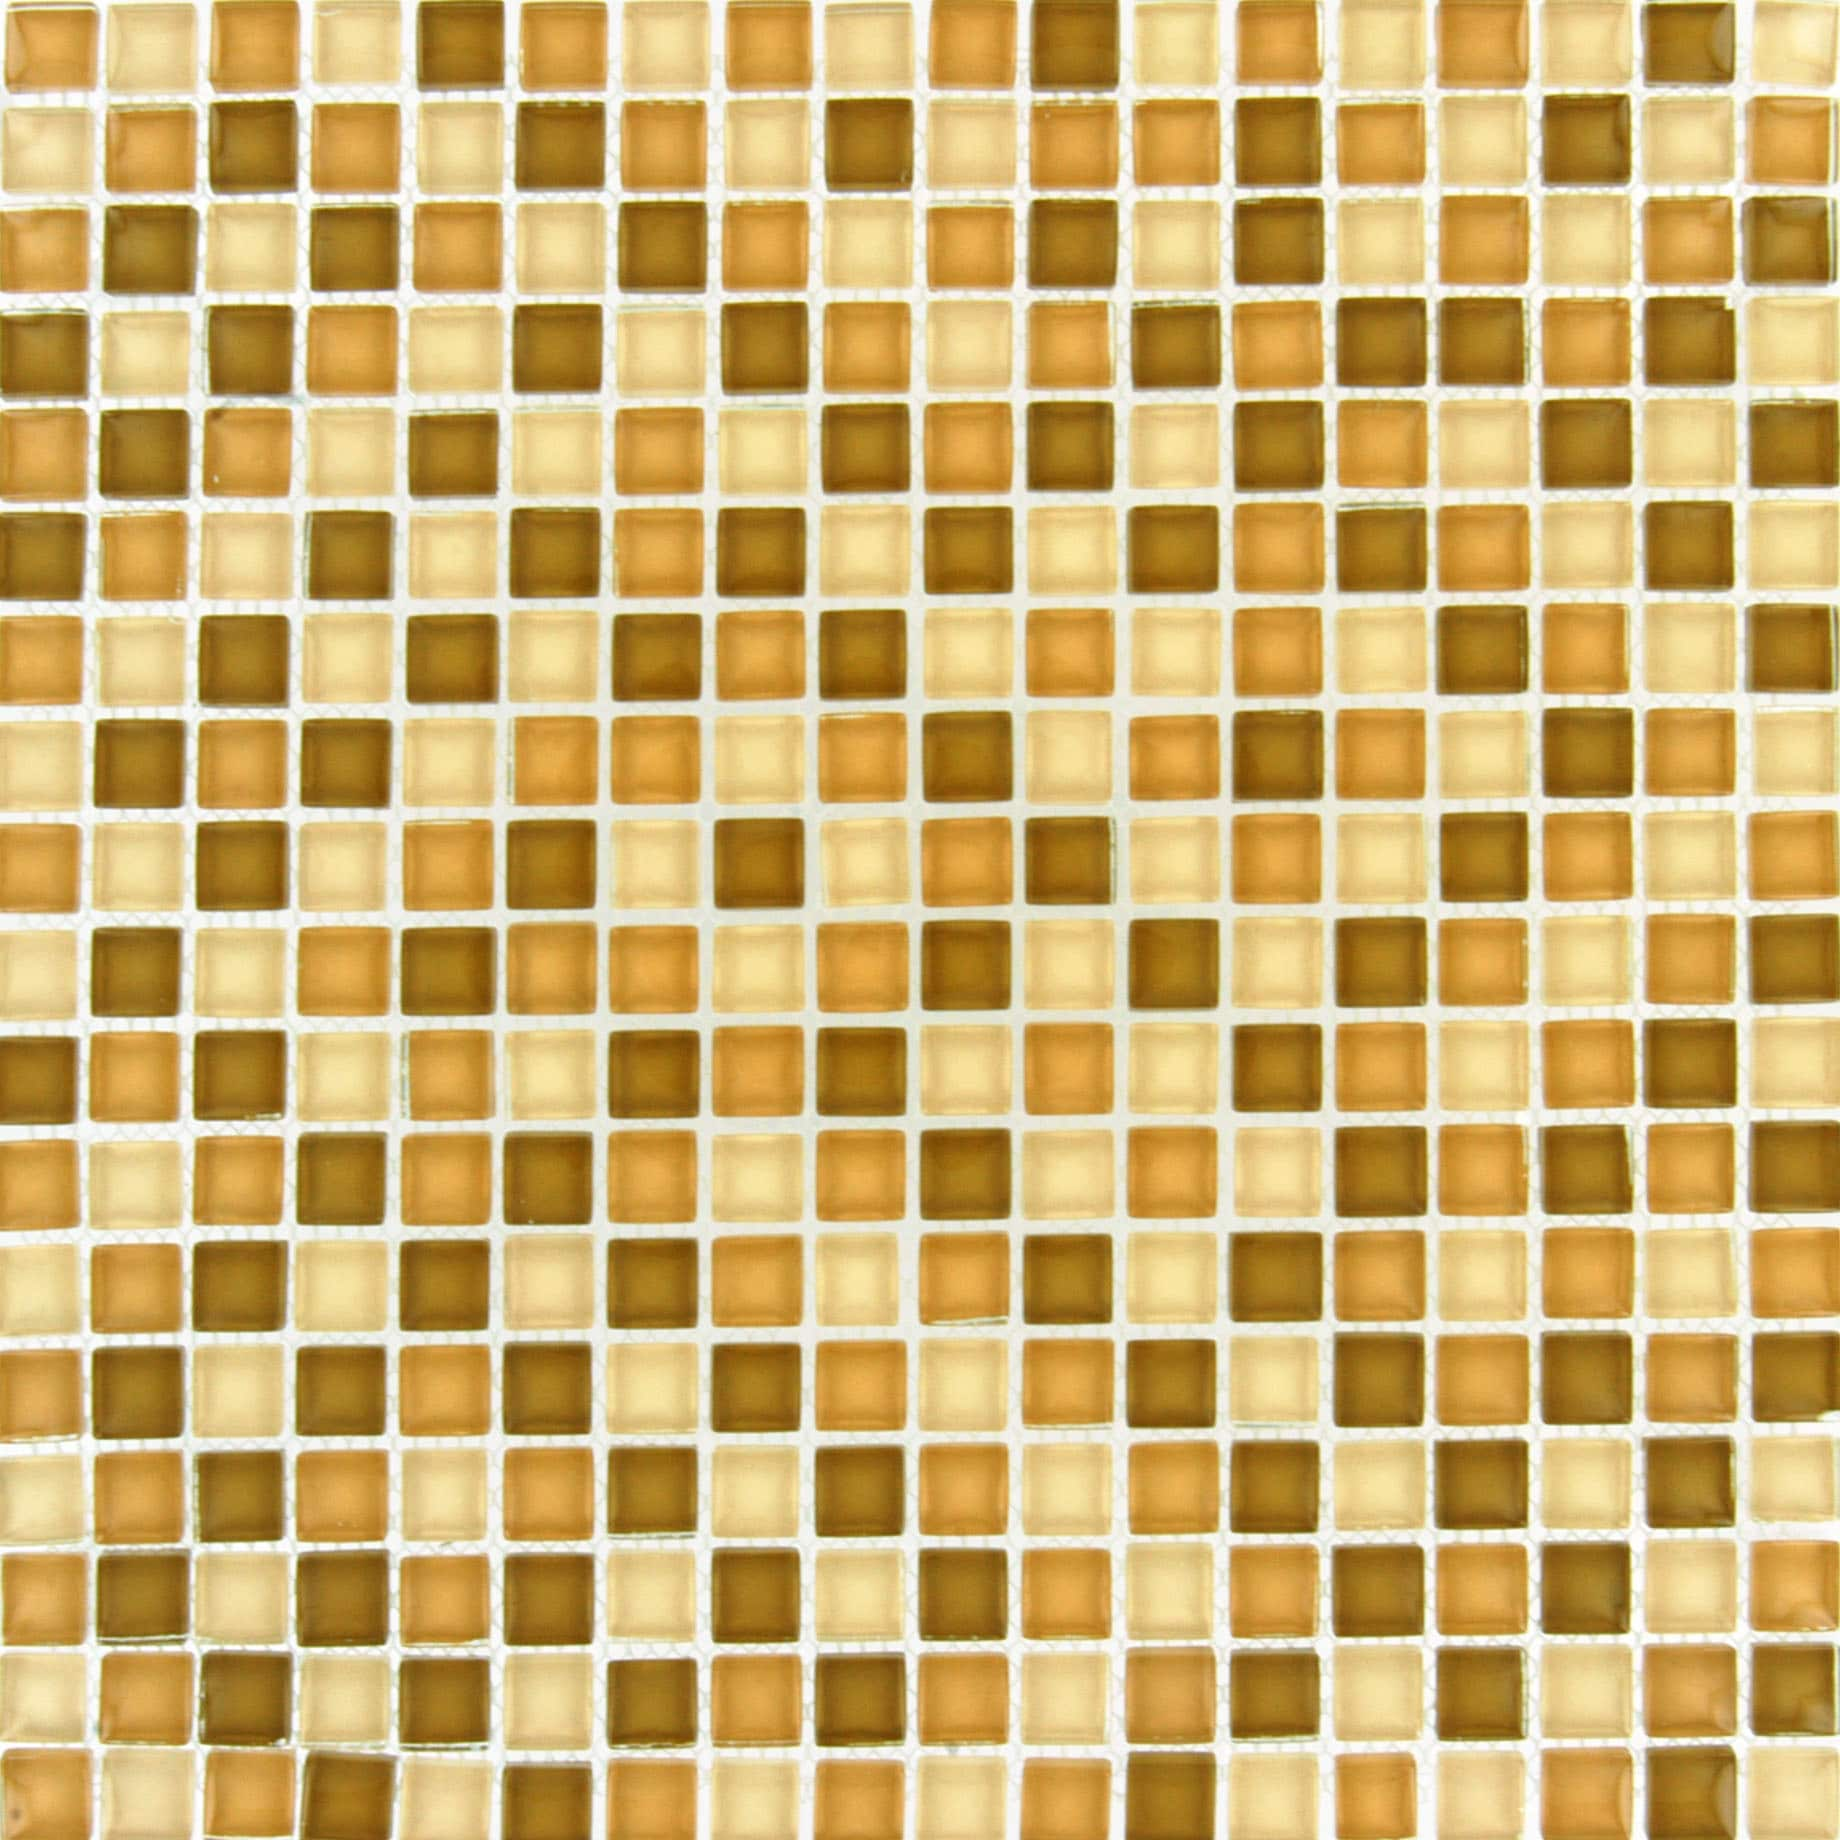 Paradise Valley Glass Tile (Pack of 10)